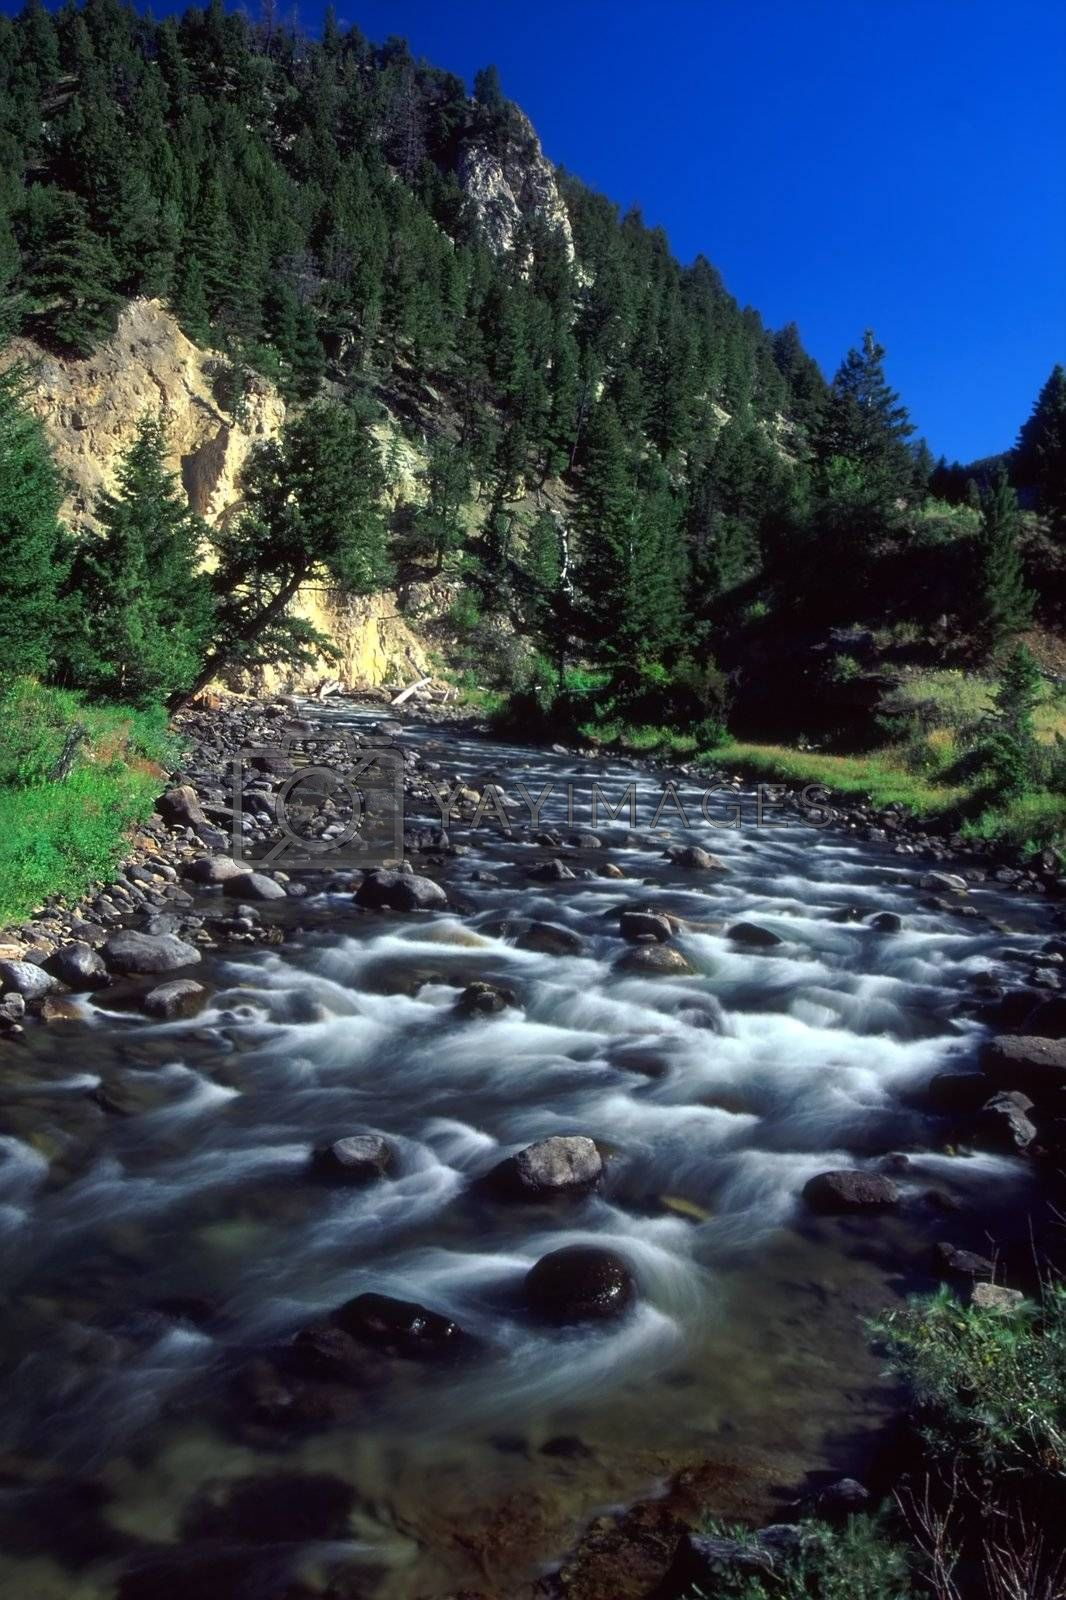 Royalty free image of Gardner River - Yellowstone National Park by Wirepec